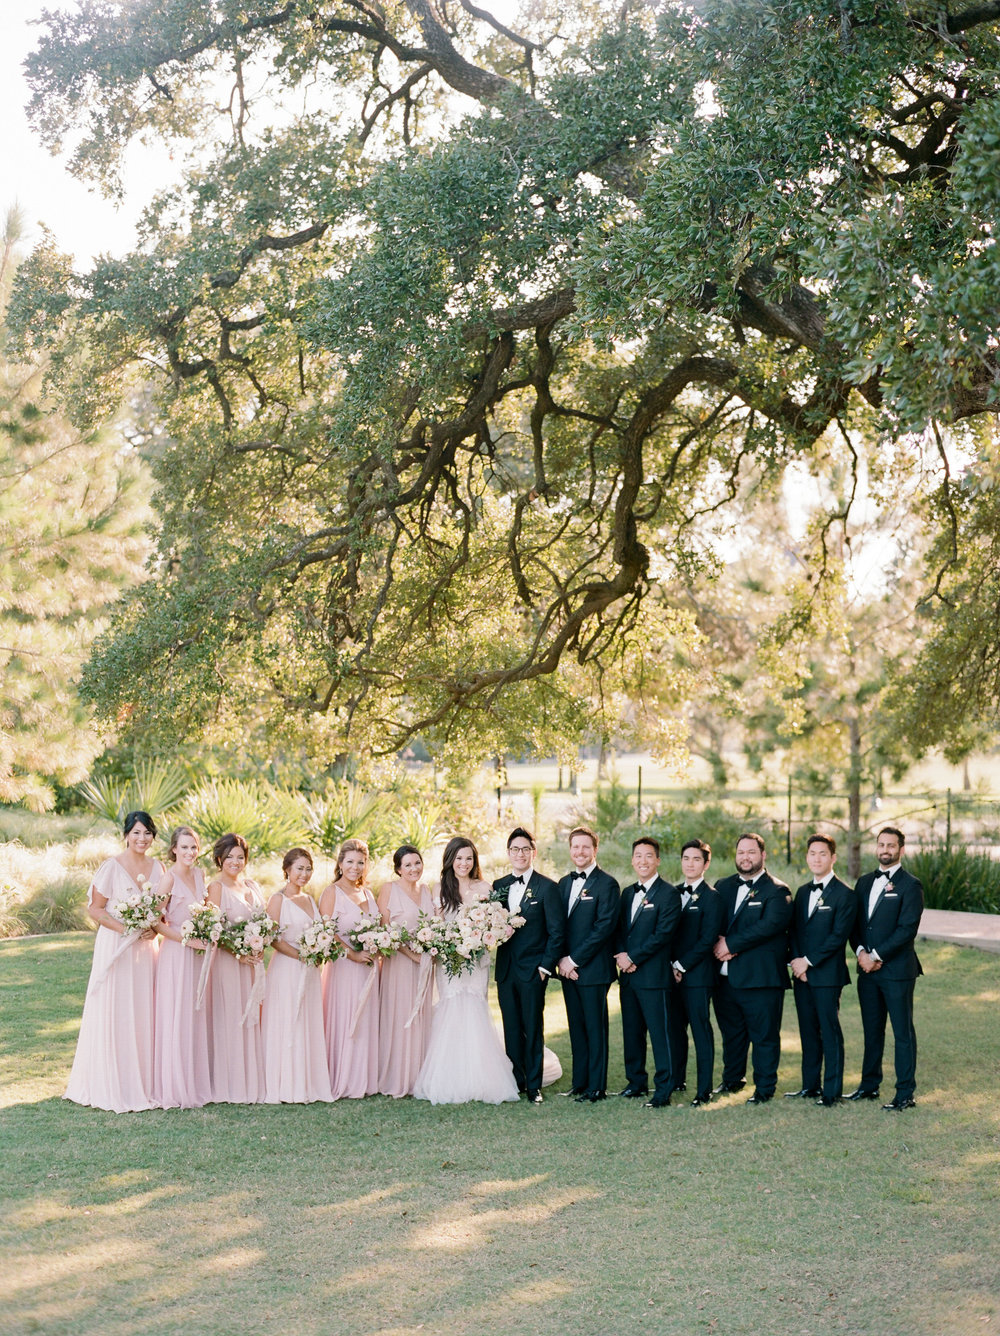 Martha-Stewart-Wedding-Dana-Fernandez-Photography-Josh-Texas-Film-Houston-Wedding-Fine-Art-Photographer-McGovern-Centennial-Gardens-Top-Best-187.jpg